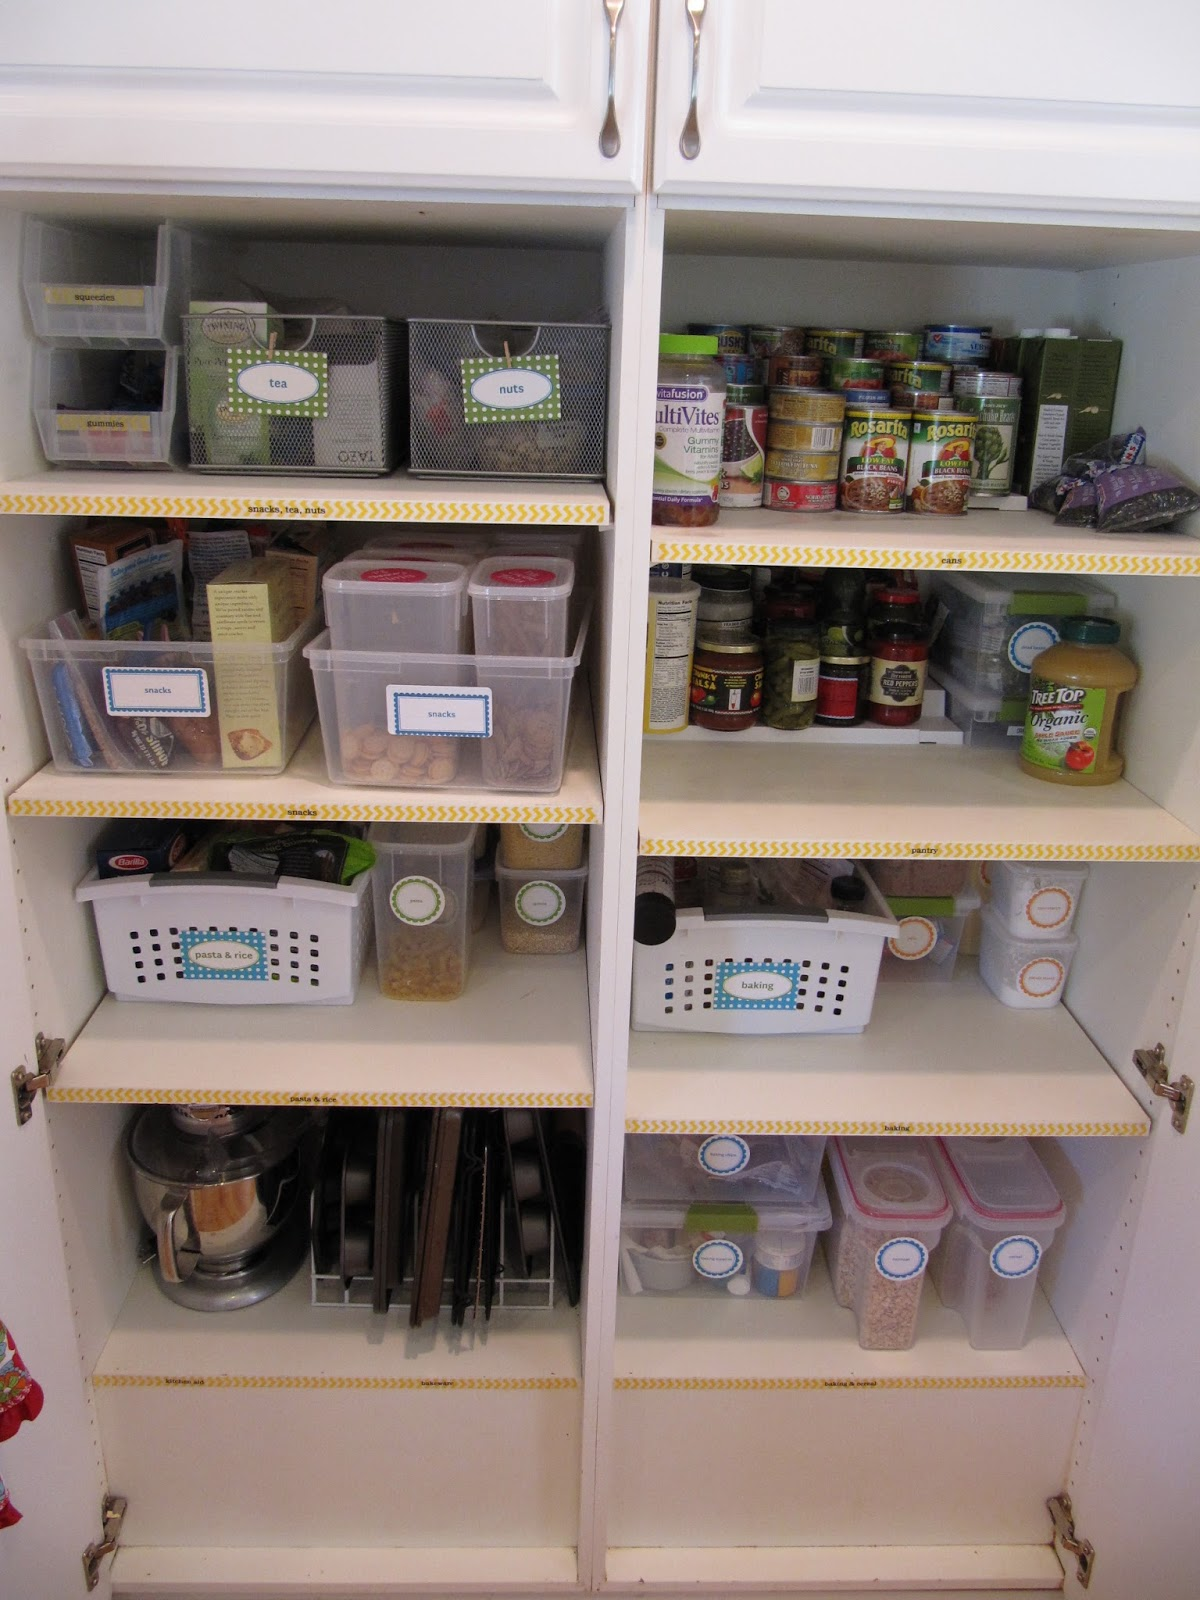 To Organize Kitchen Everyday Organizing An Organized Kitchen The Pantry Part I